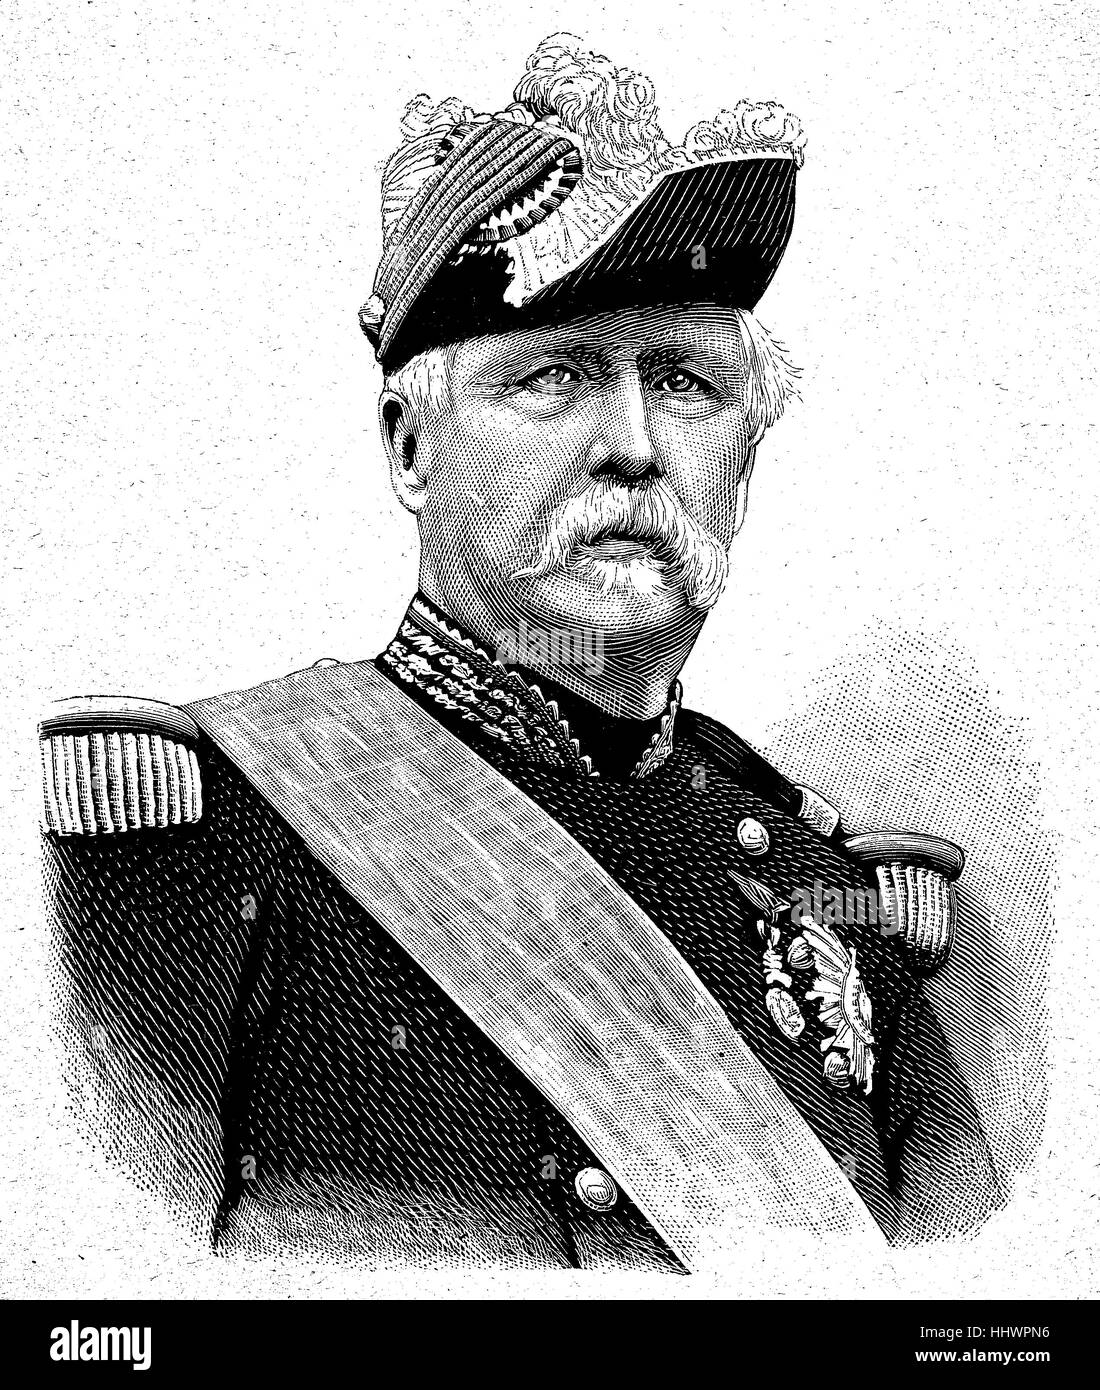 Marshal Marie Esme Patrice Maurice, Count de MacMahon, Duke of Magenta, 13 June 1808 - 17 October 1893, was a French - Stock Image